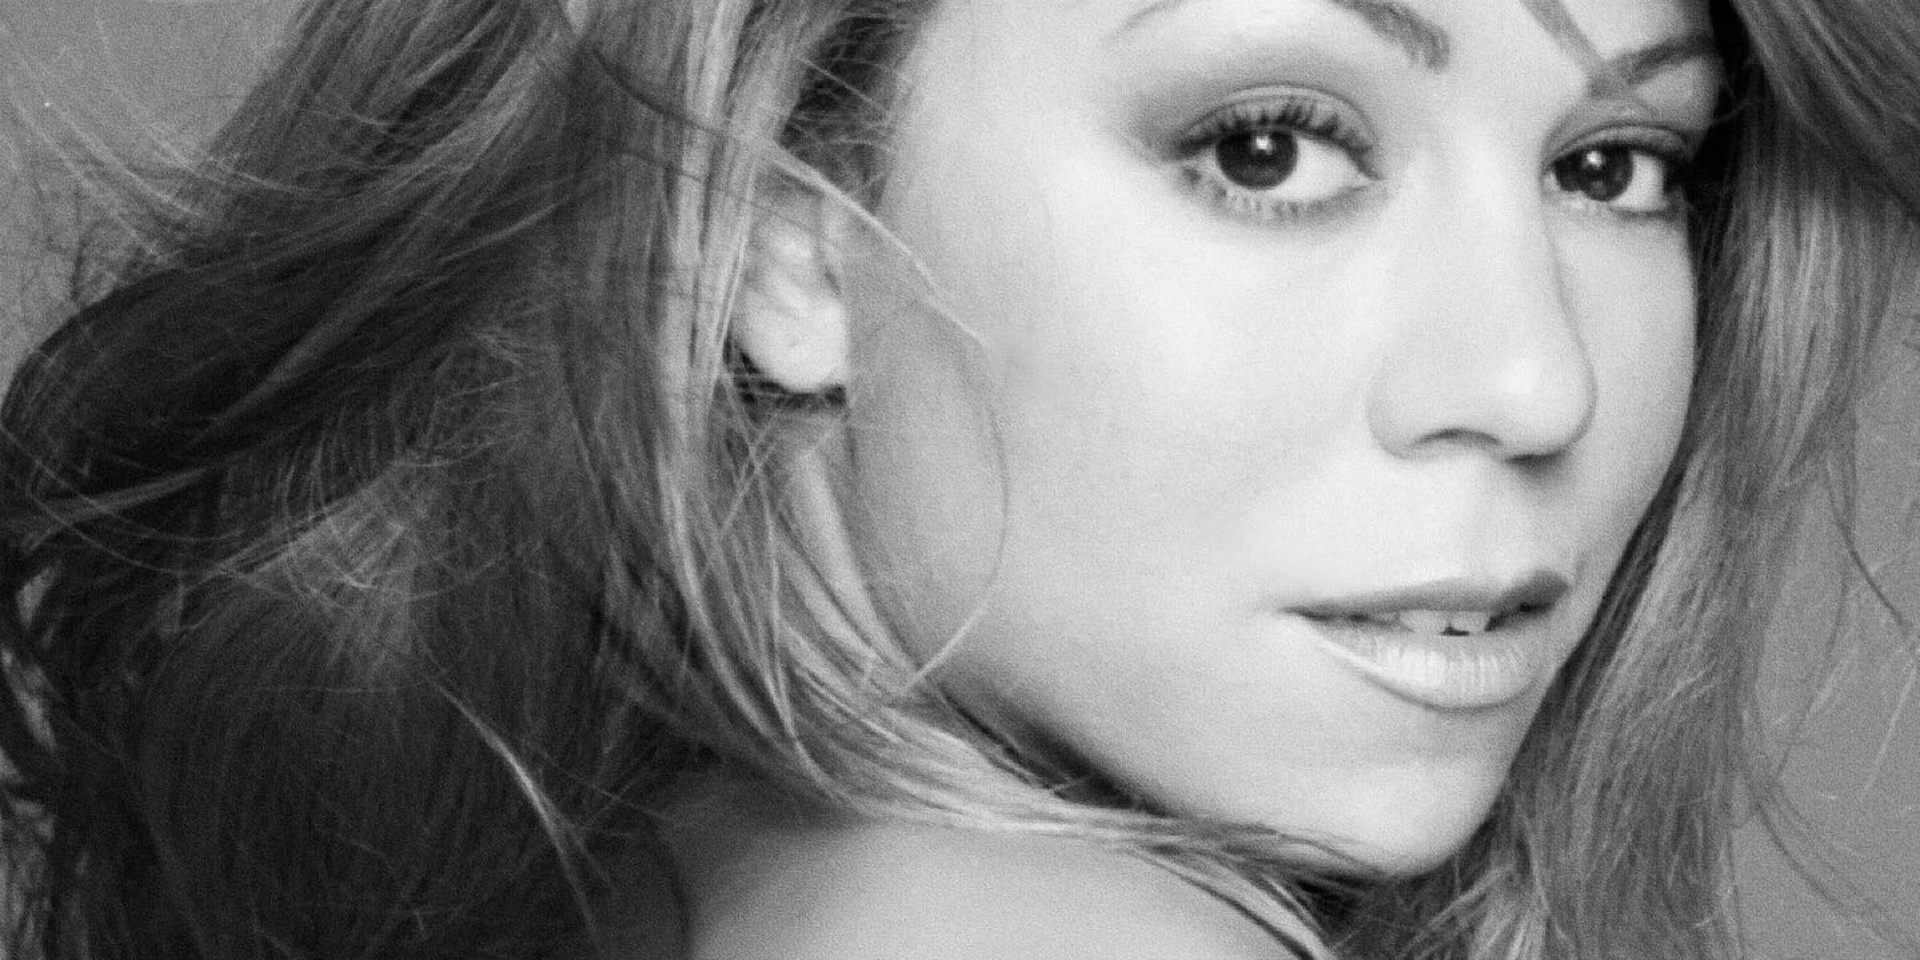 Mariah Carey announces new compilation album 'The Rarities' featuring a track with Lauryn Hill